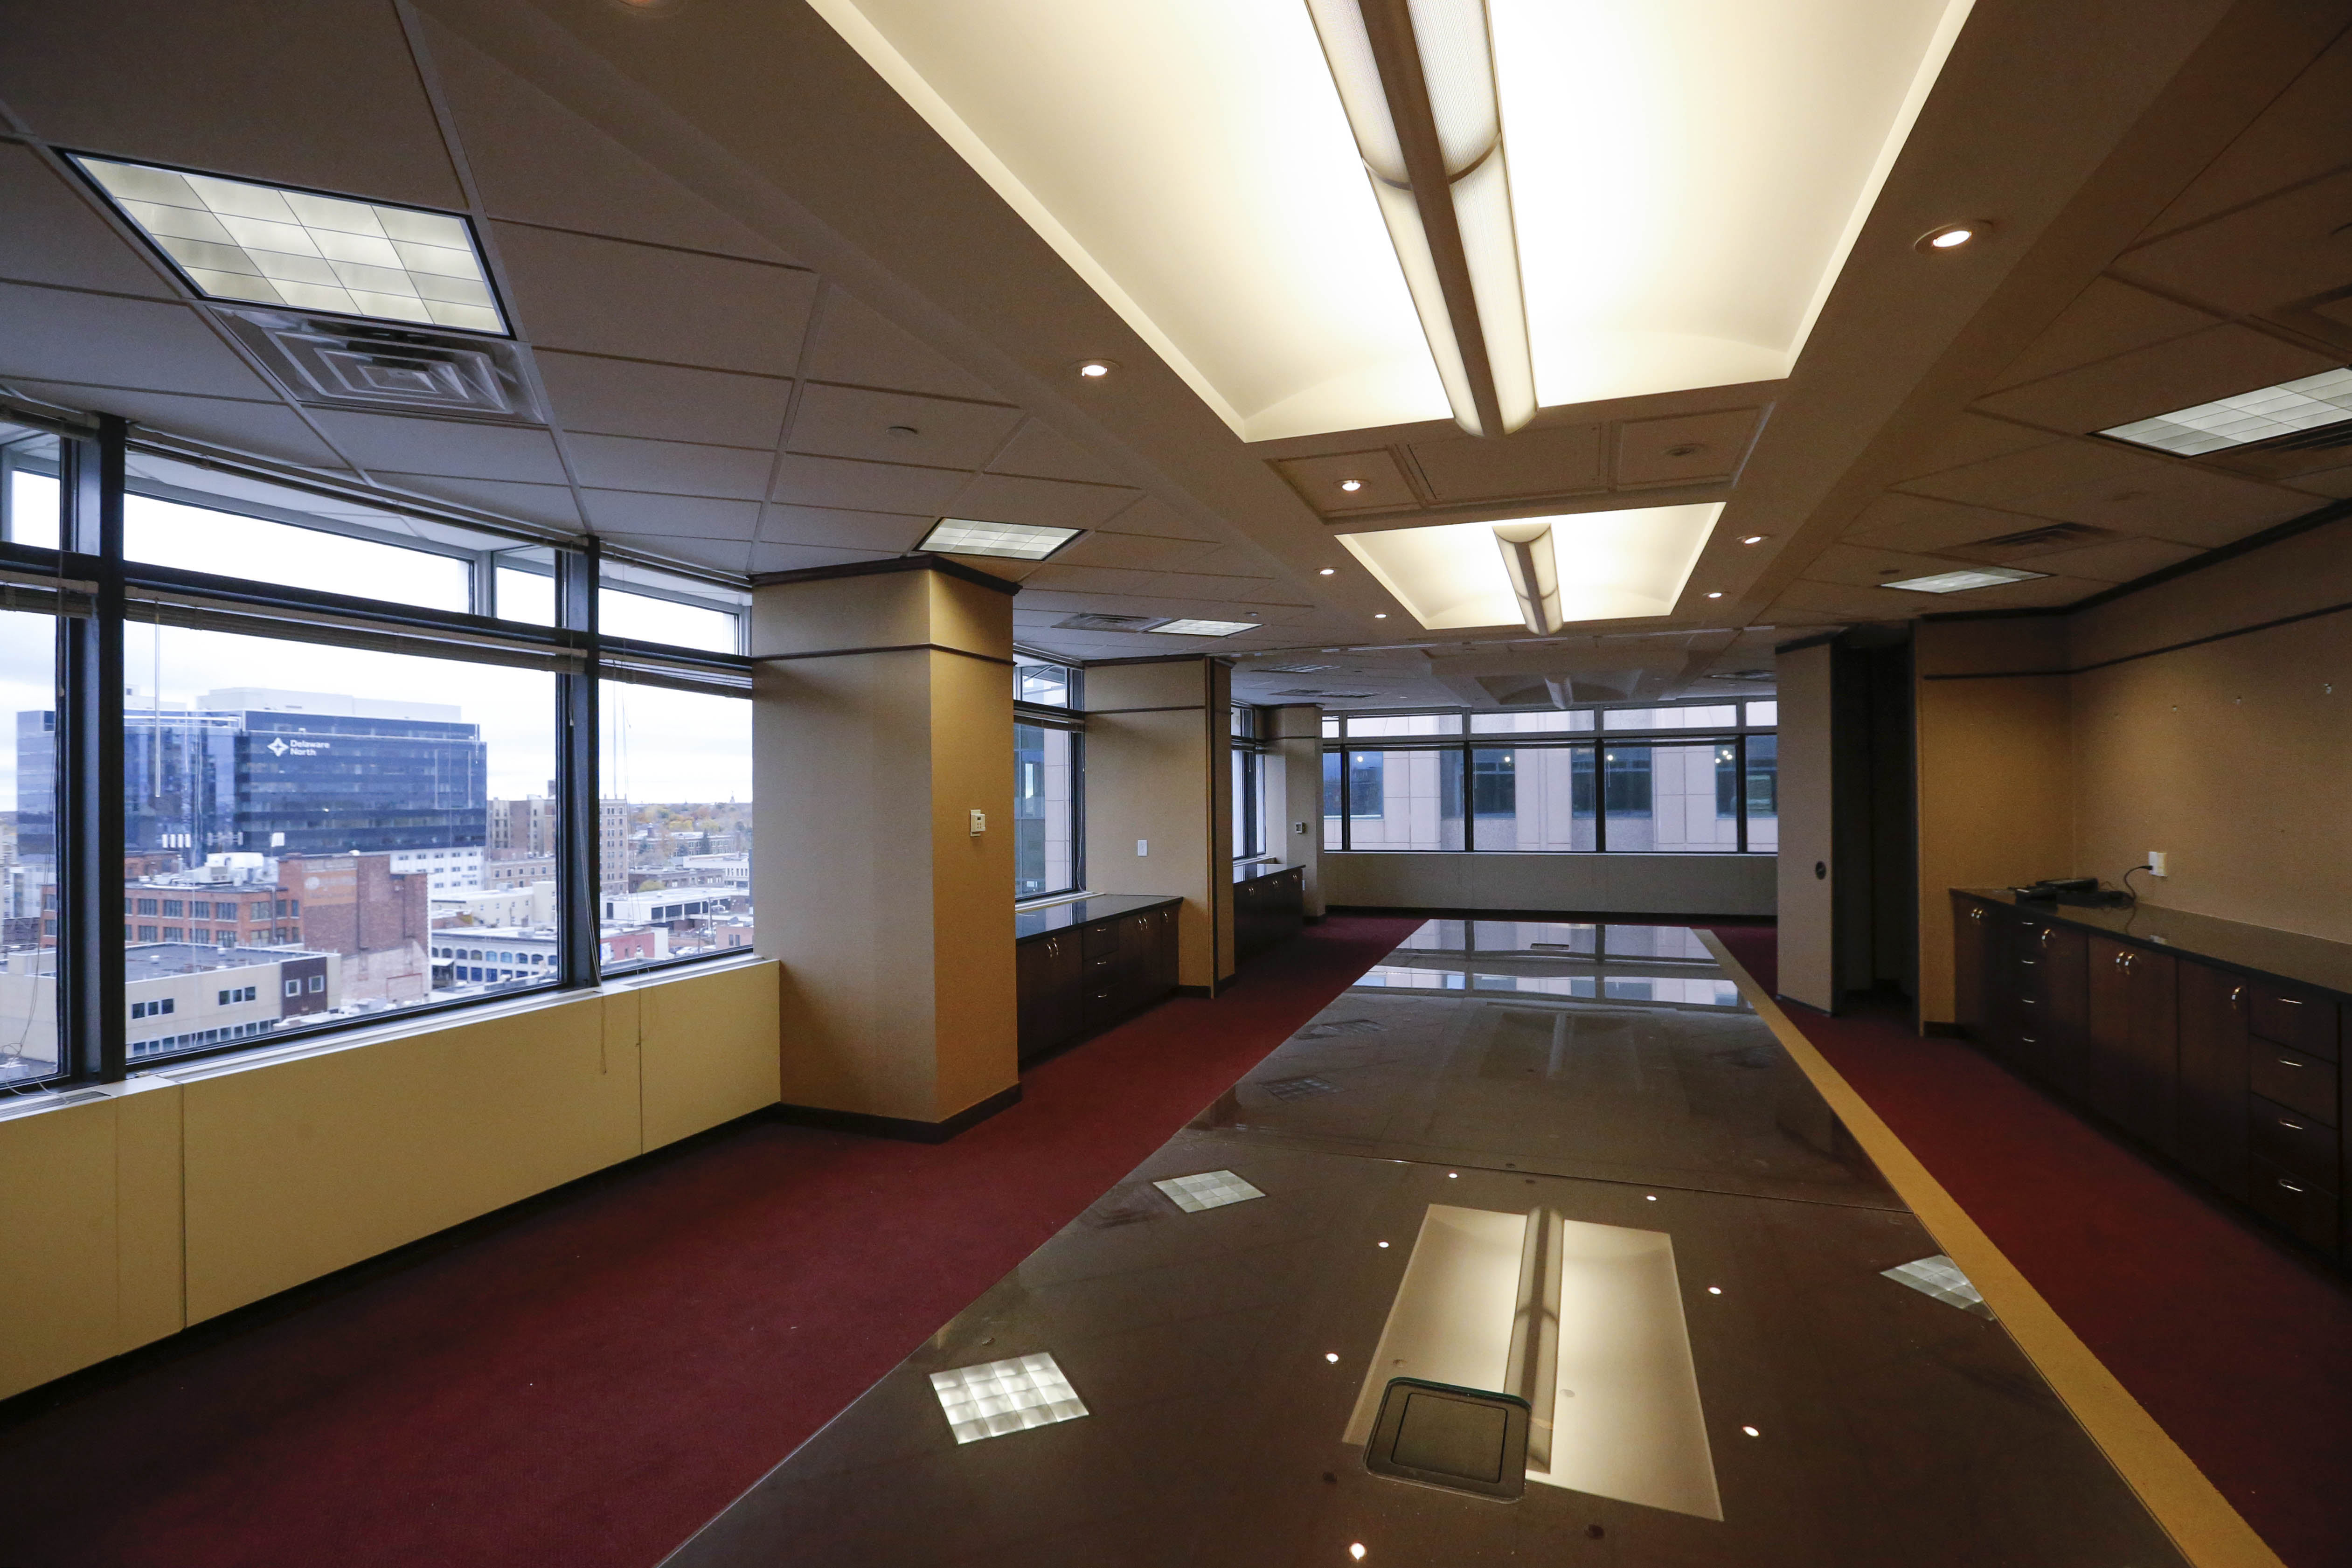 Available office space in the Bank of America building in Fountain Plaza on Main Street that the Erie County Department of Social Services wants to move into. (Derek Gee/Buffalo News)